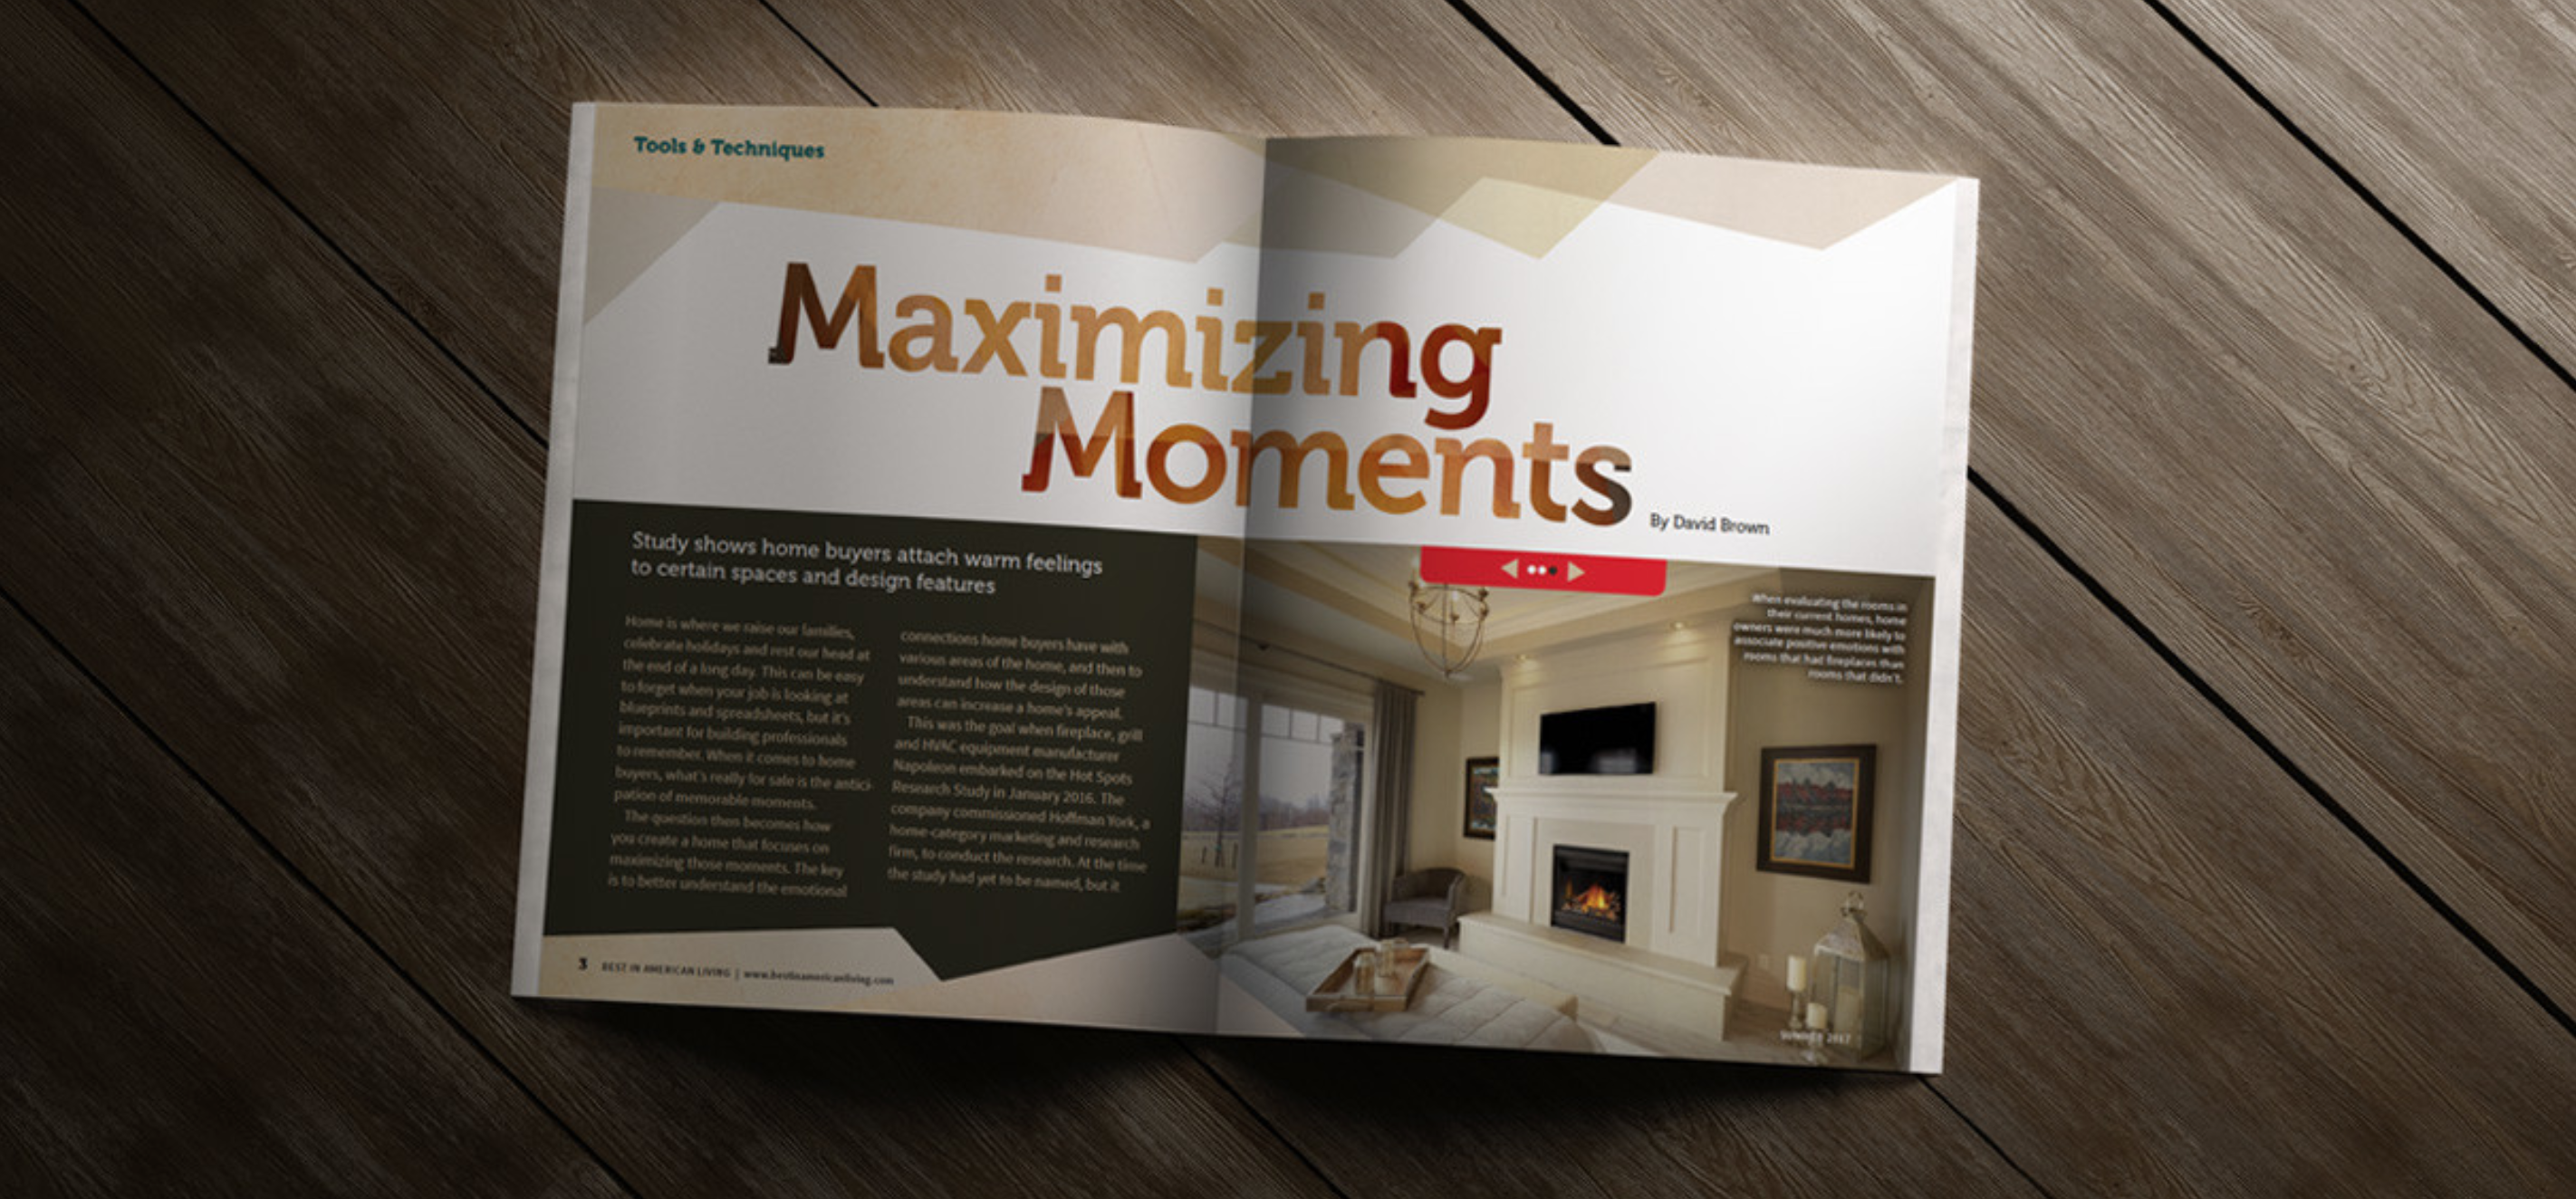 Napoleon fireplaces Hot Spots campaign placement in magazine